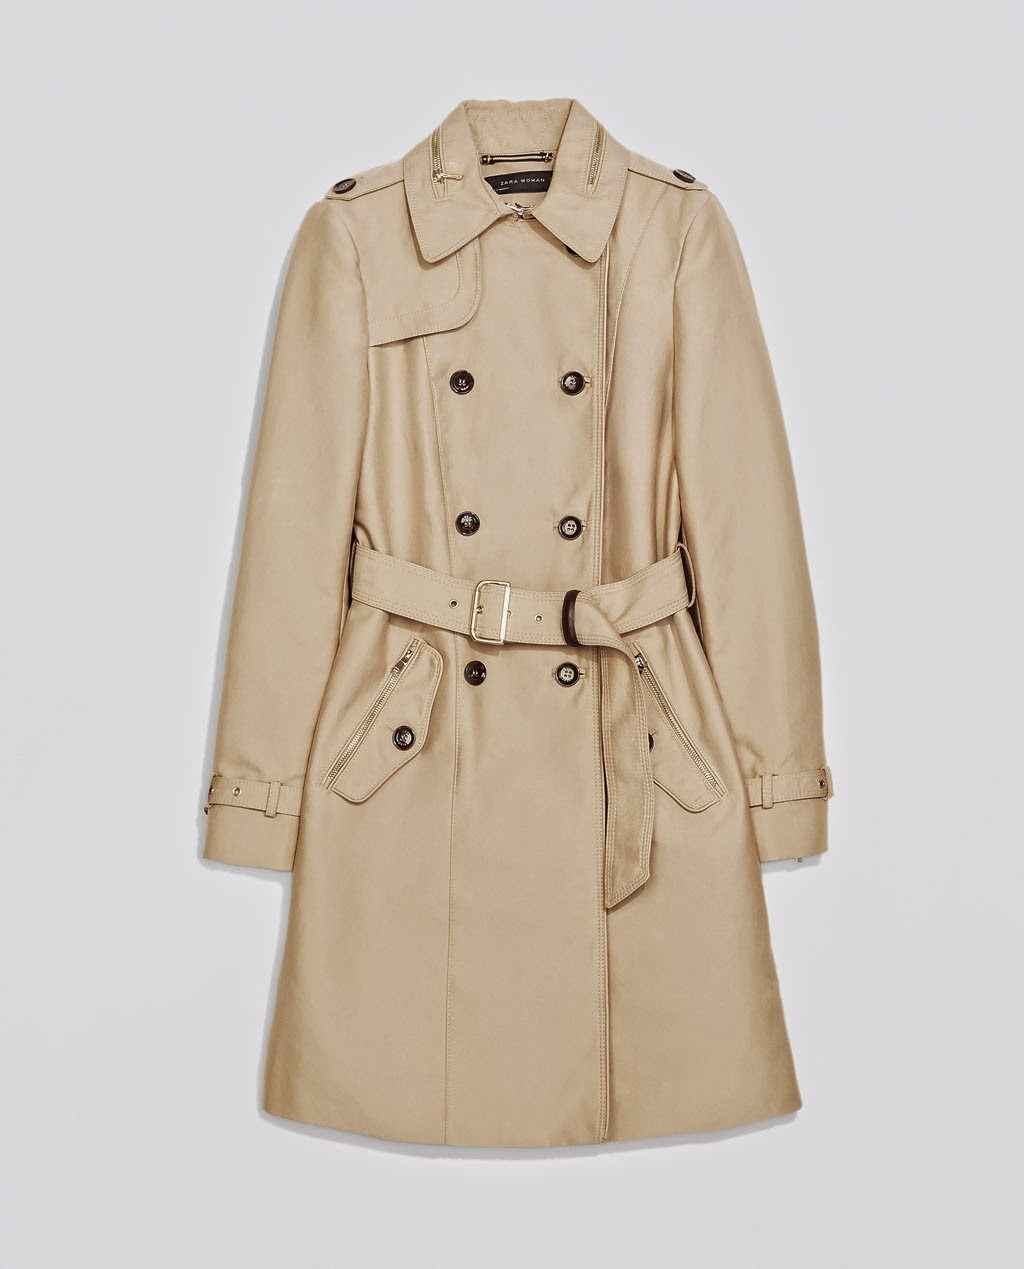 http://www.zara.com/uk/en/woman/outerwear/double-breasted-trench-coat-c269183p1983522.html